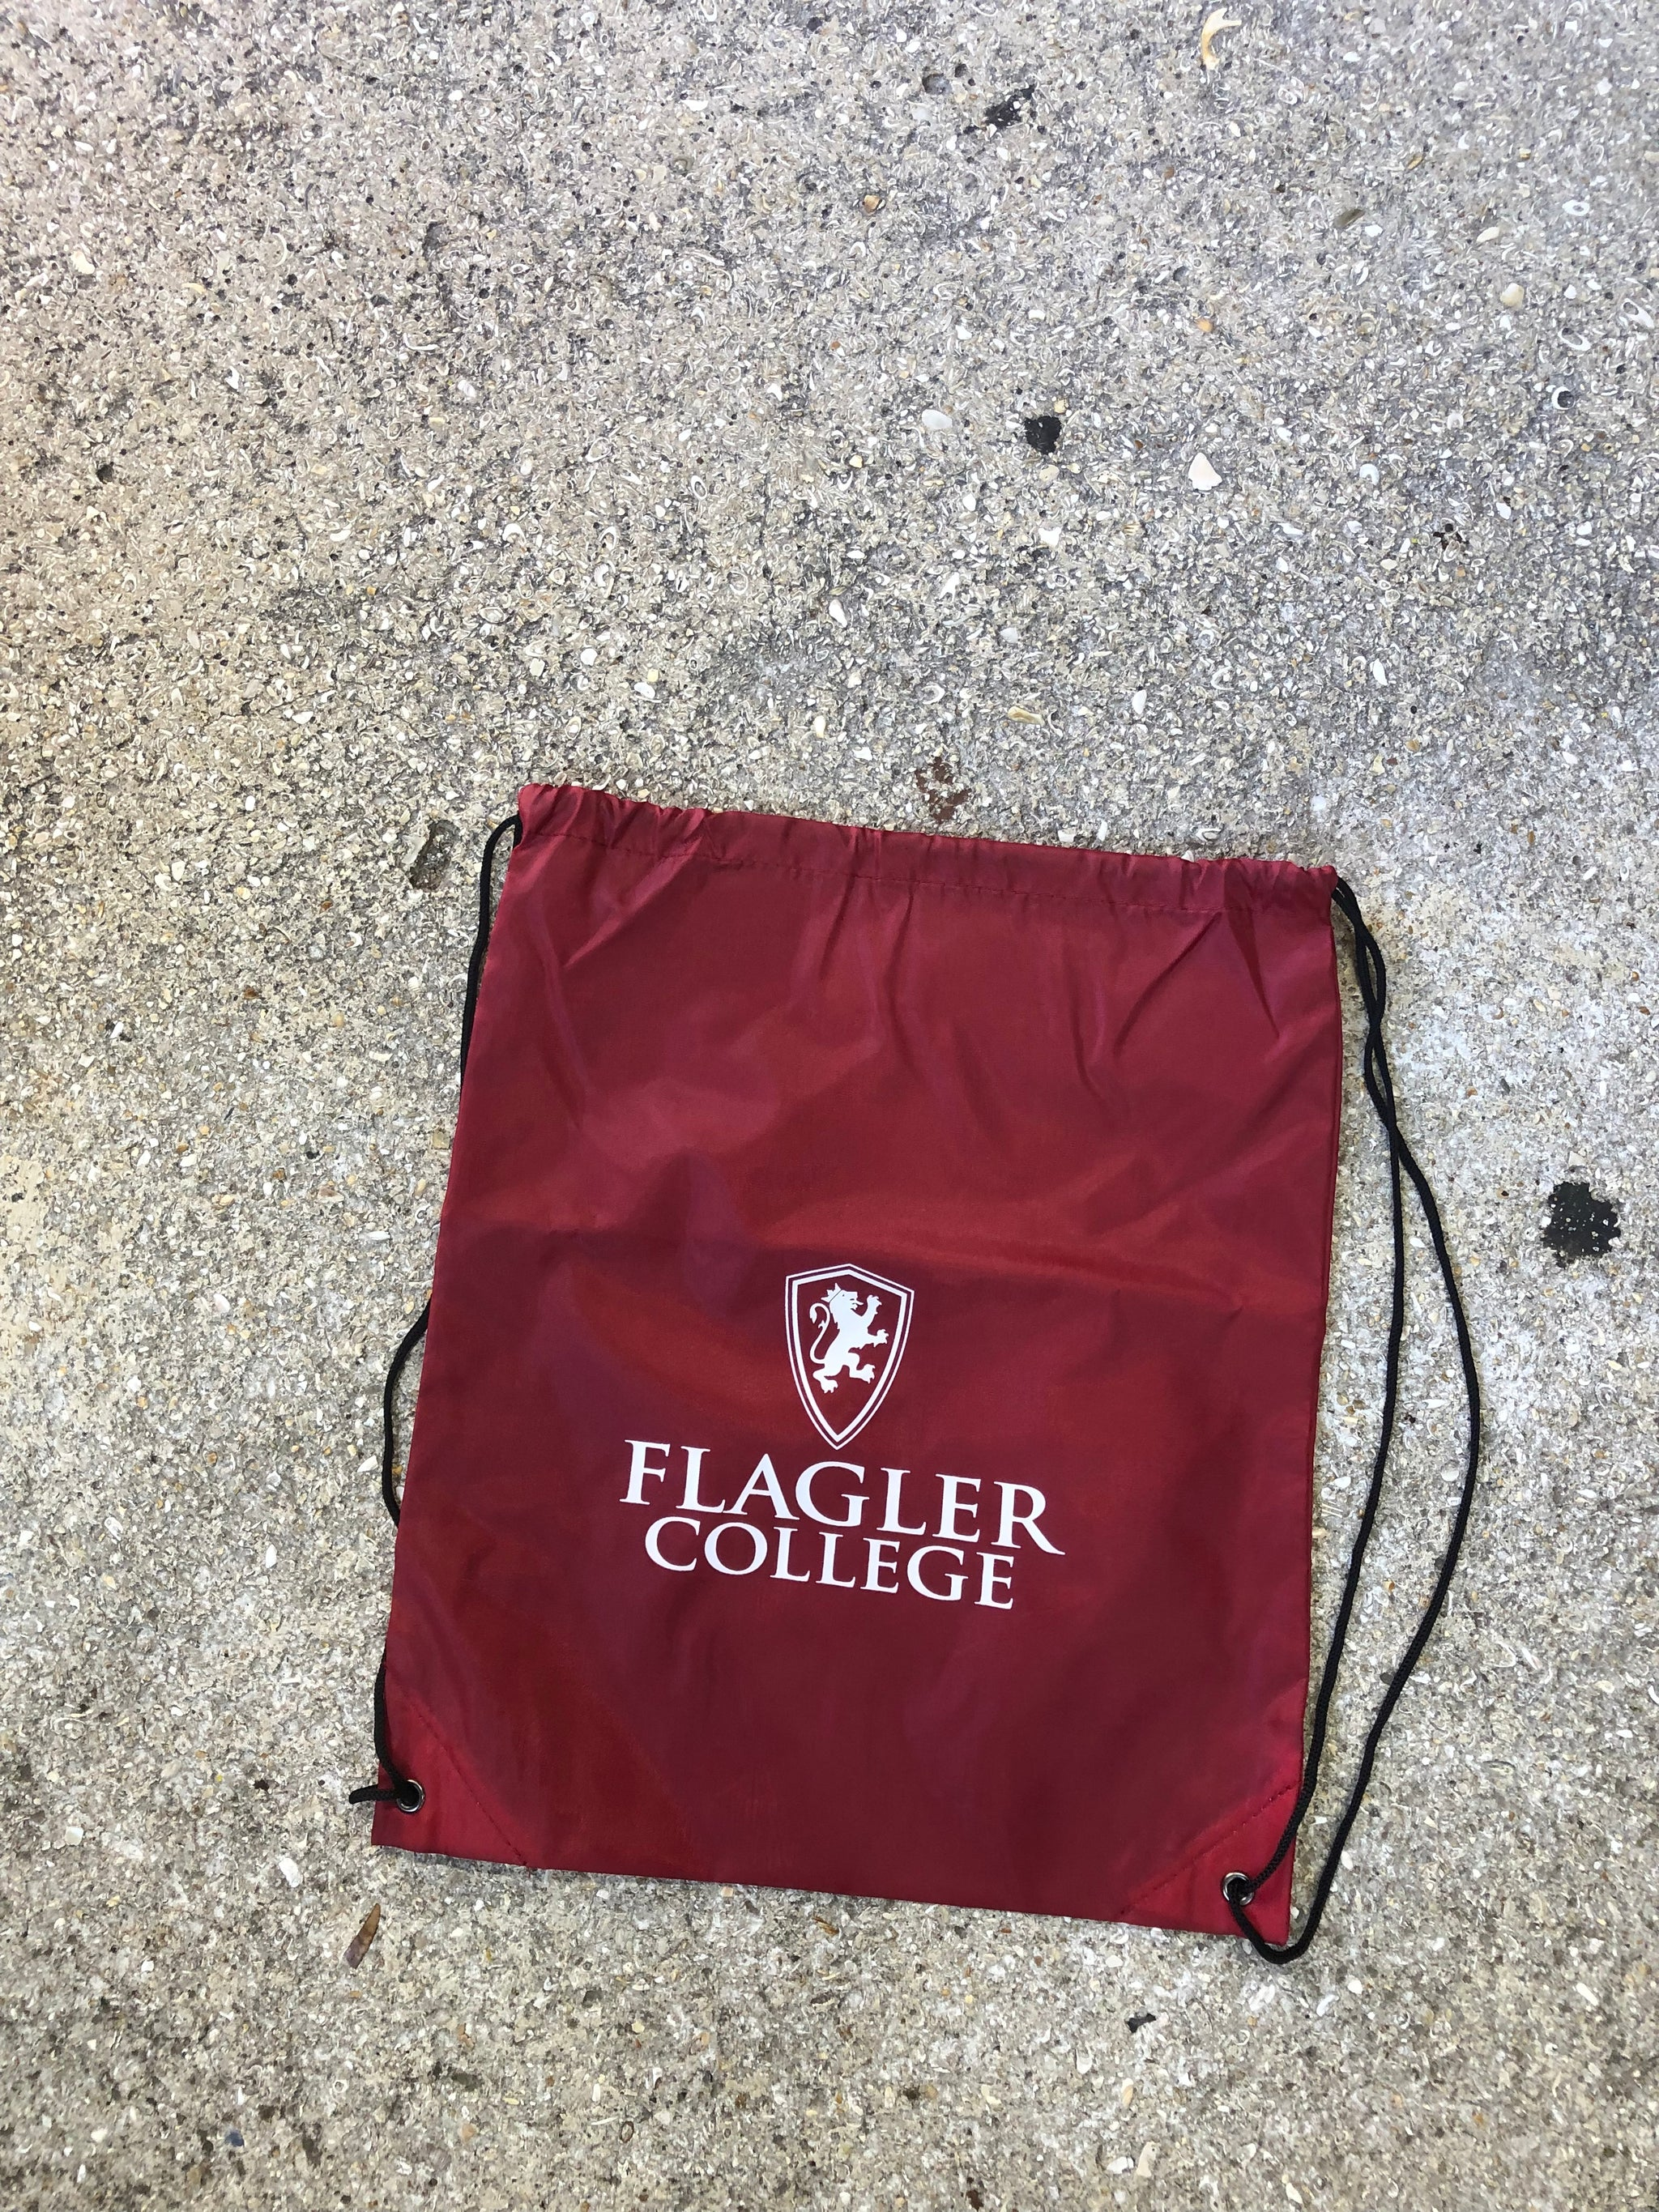 red drawstring backpack with Flagler college and shield printed in white